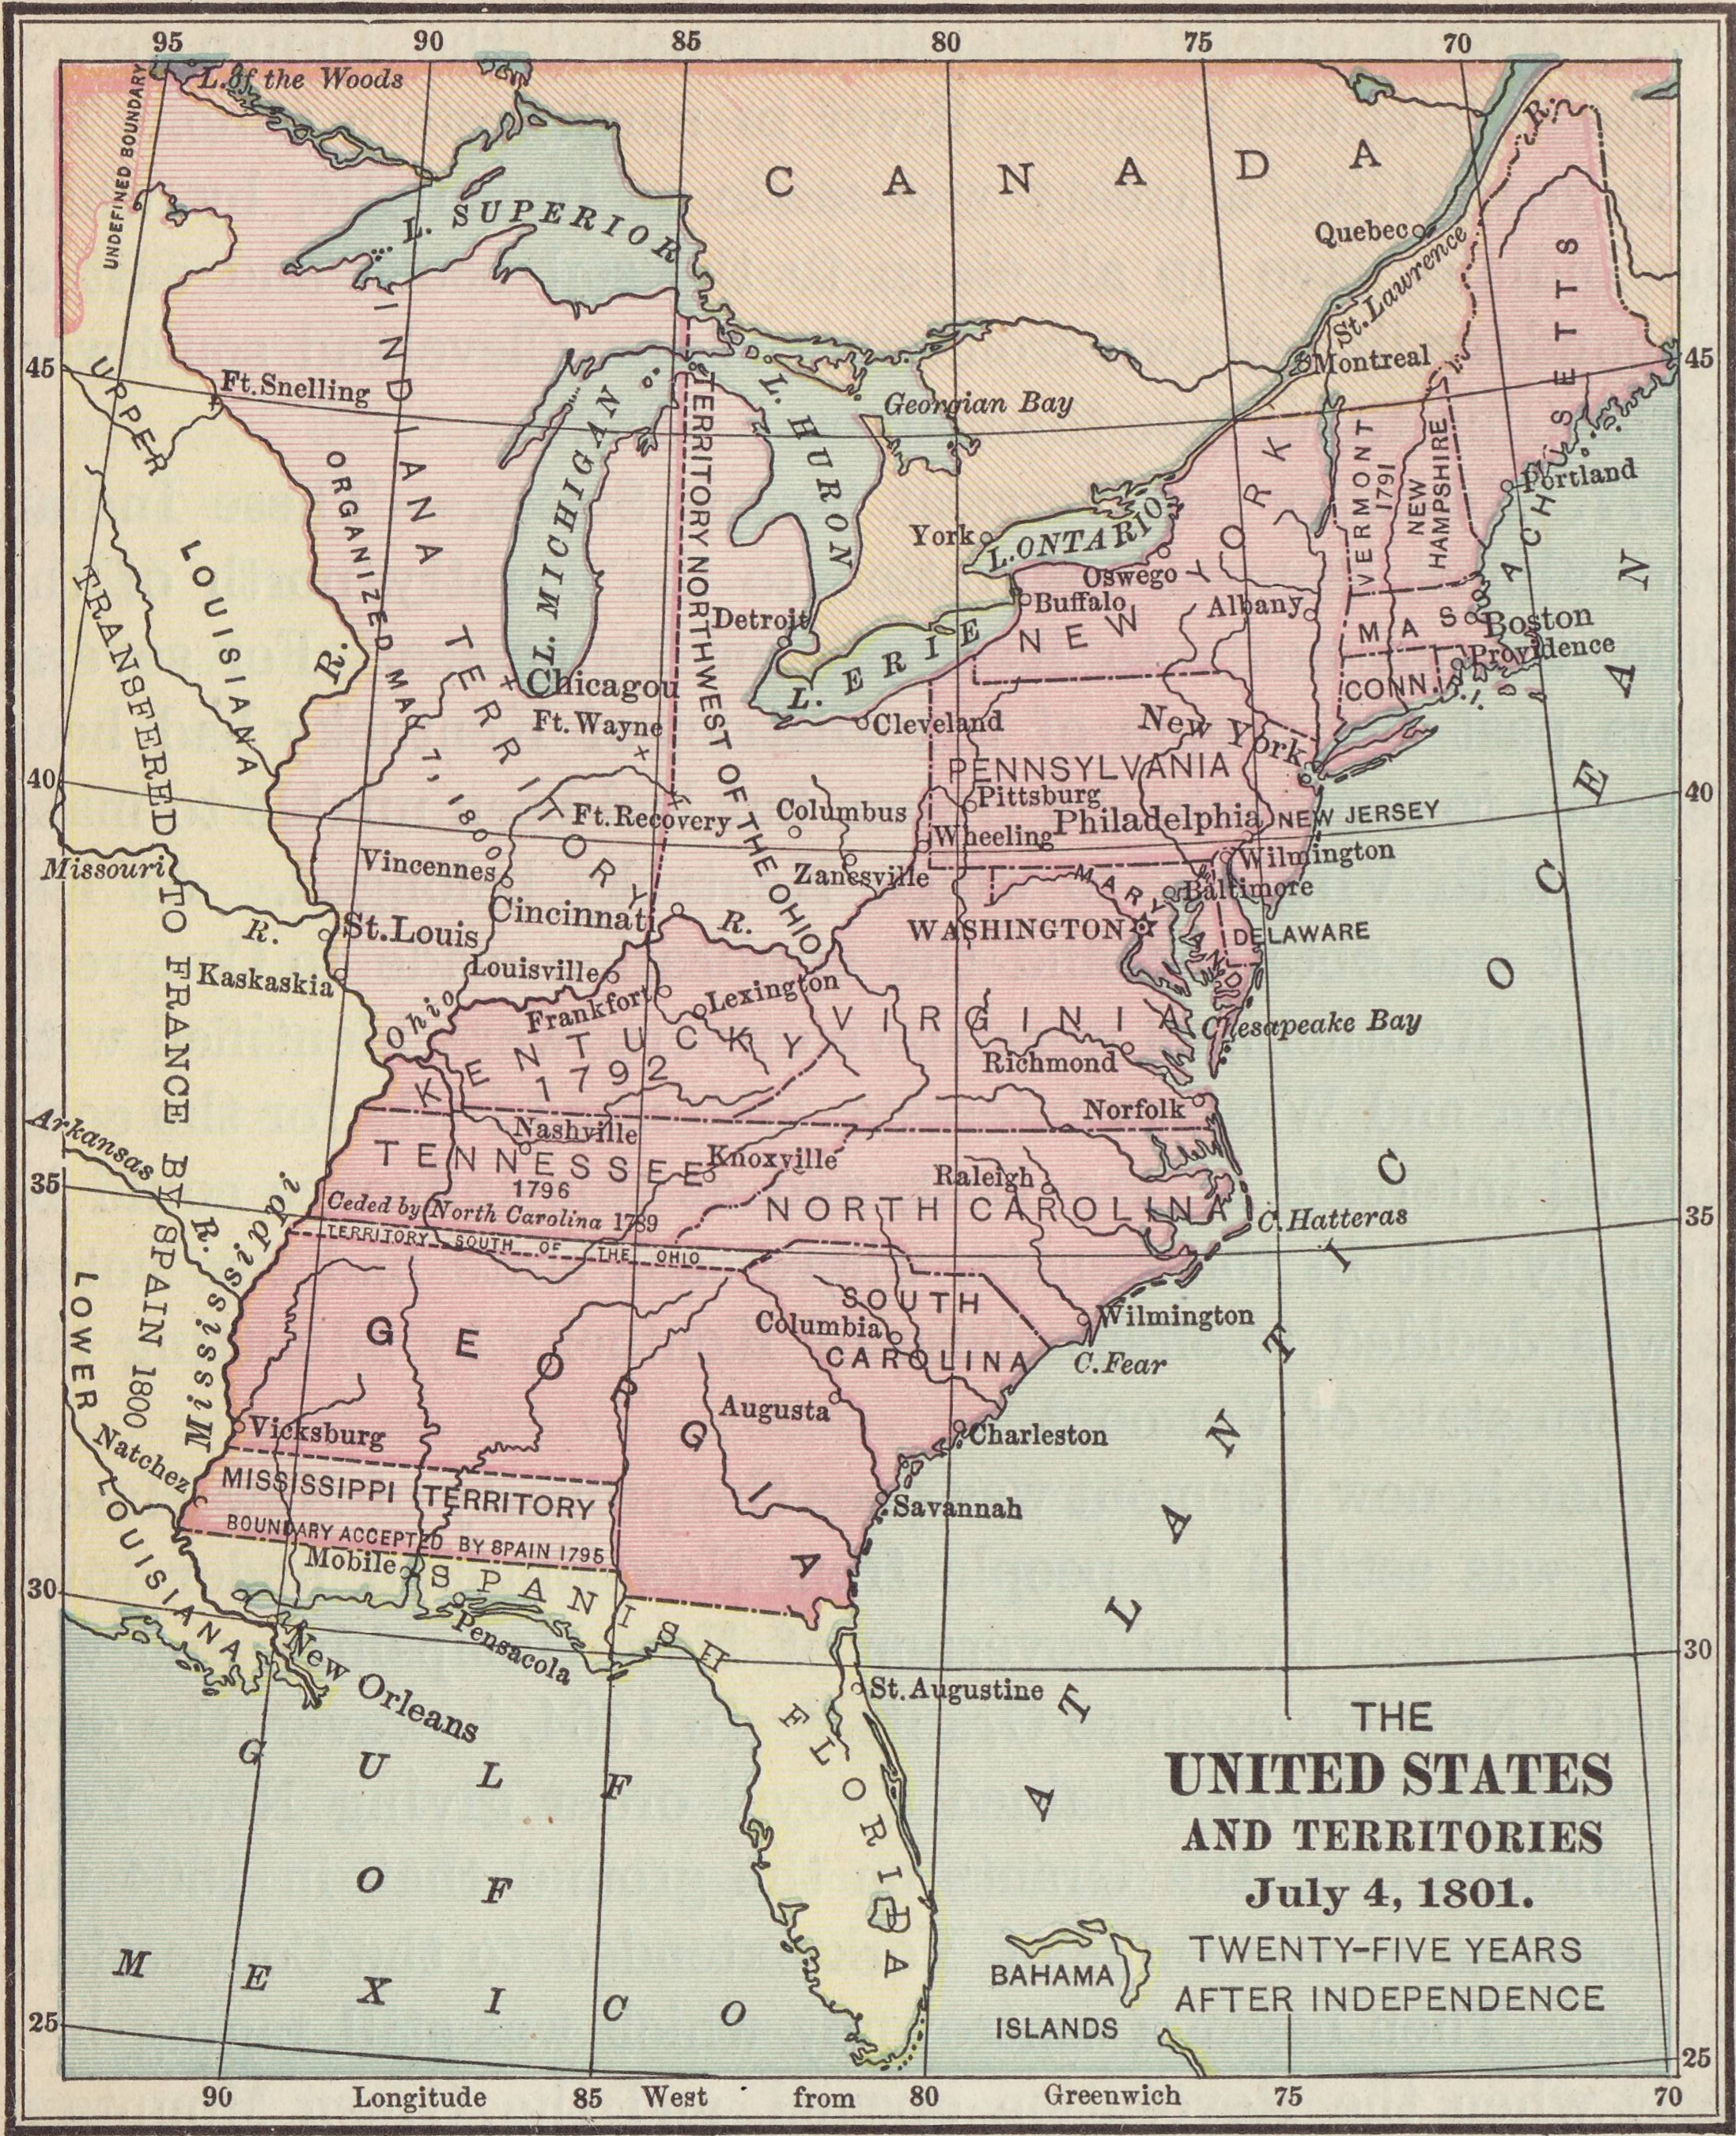 1801 in the United States